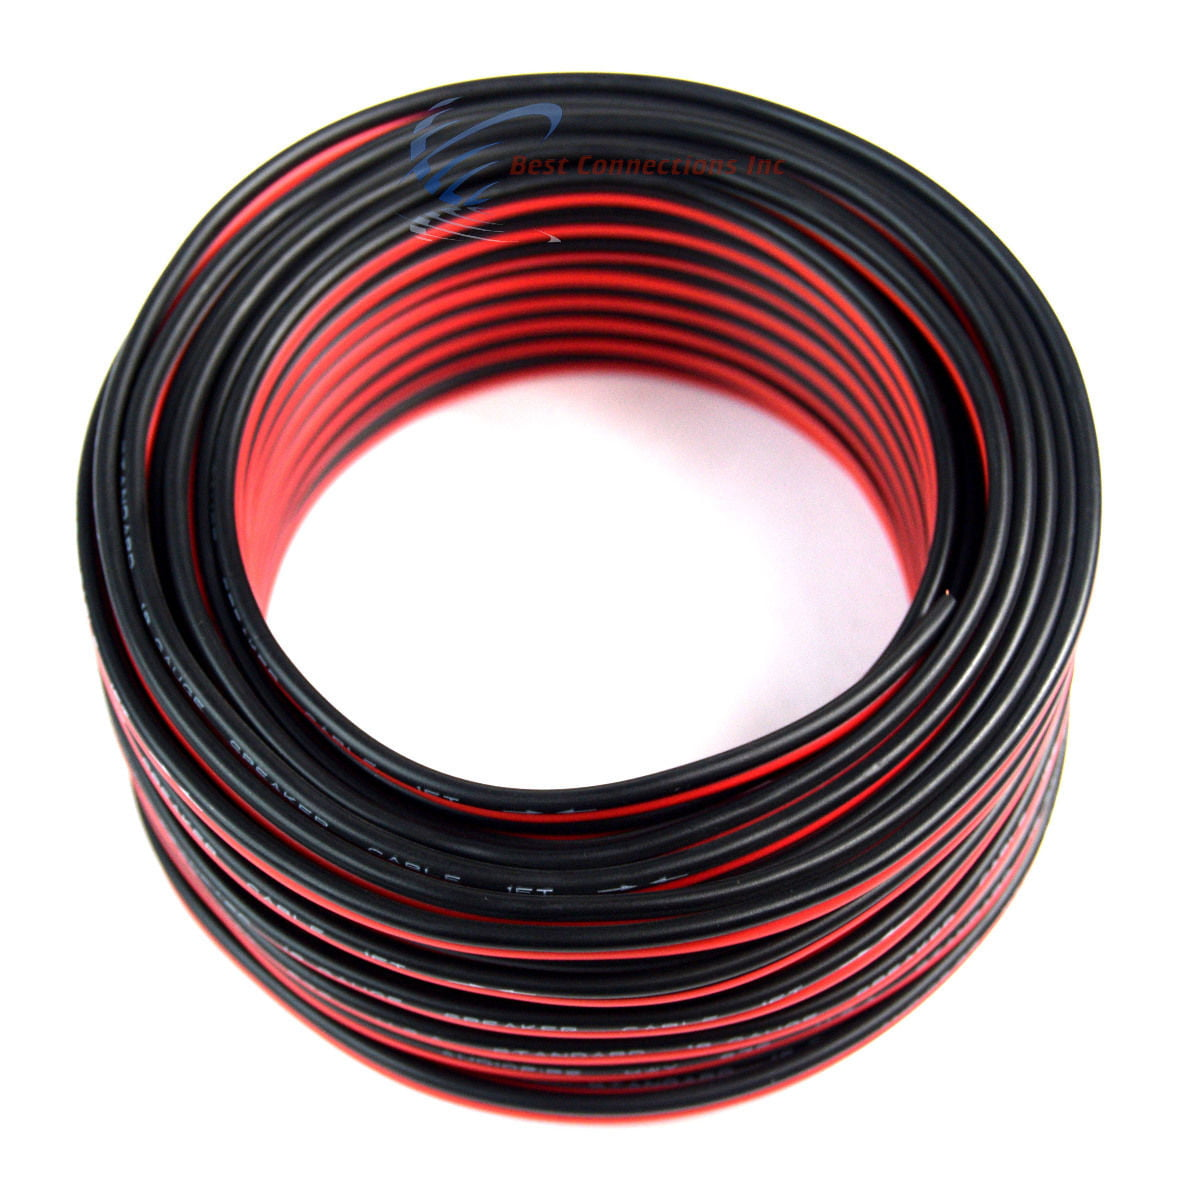 18 Gauge 50 Feet 2 Conductor Stranded Speaker Wire For Car or Home Audio 50ft